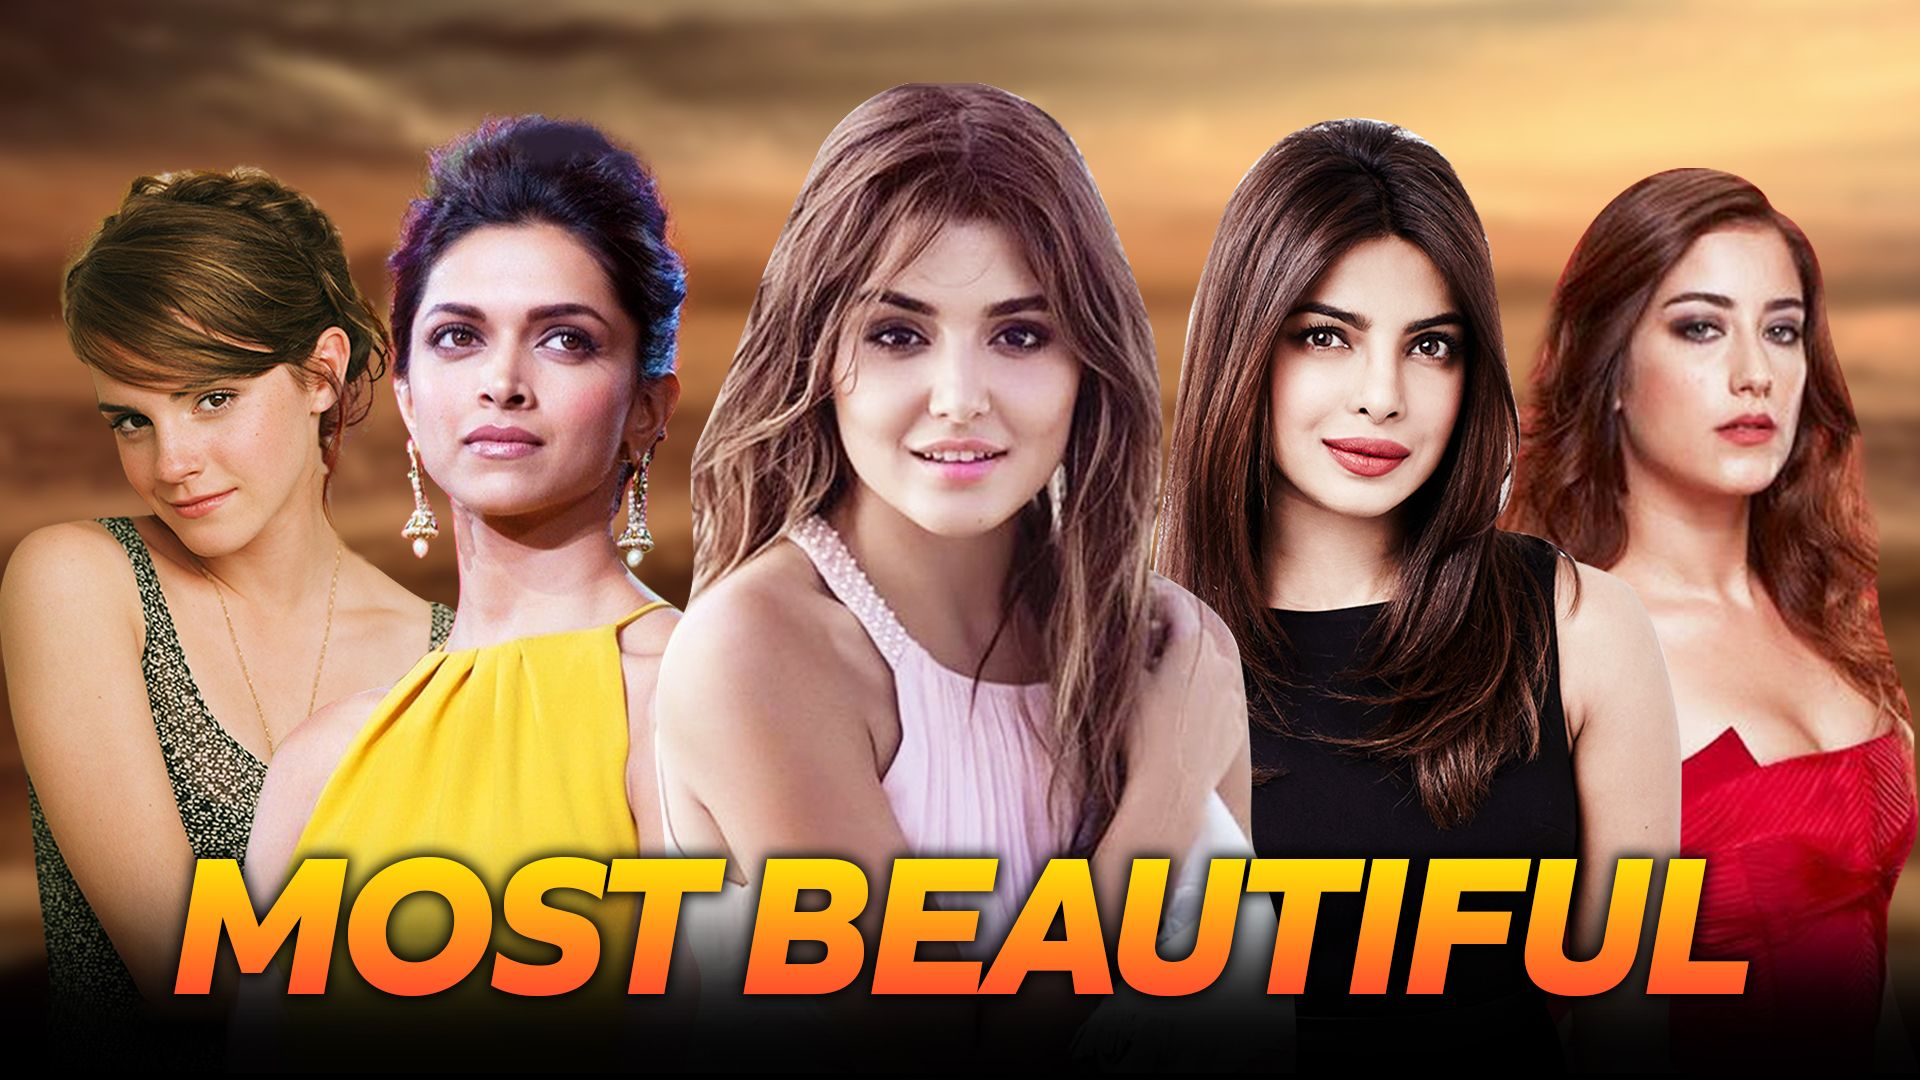 Top 10 Most Beautiful Faces Women In The World Worlds Beautiful Women Most Beautiful Faces Beautiful Women Faces